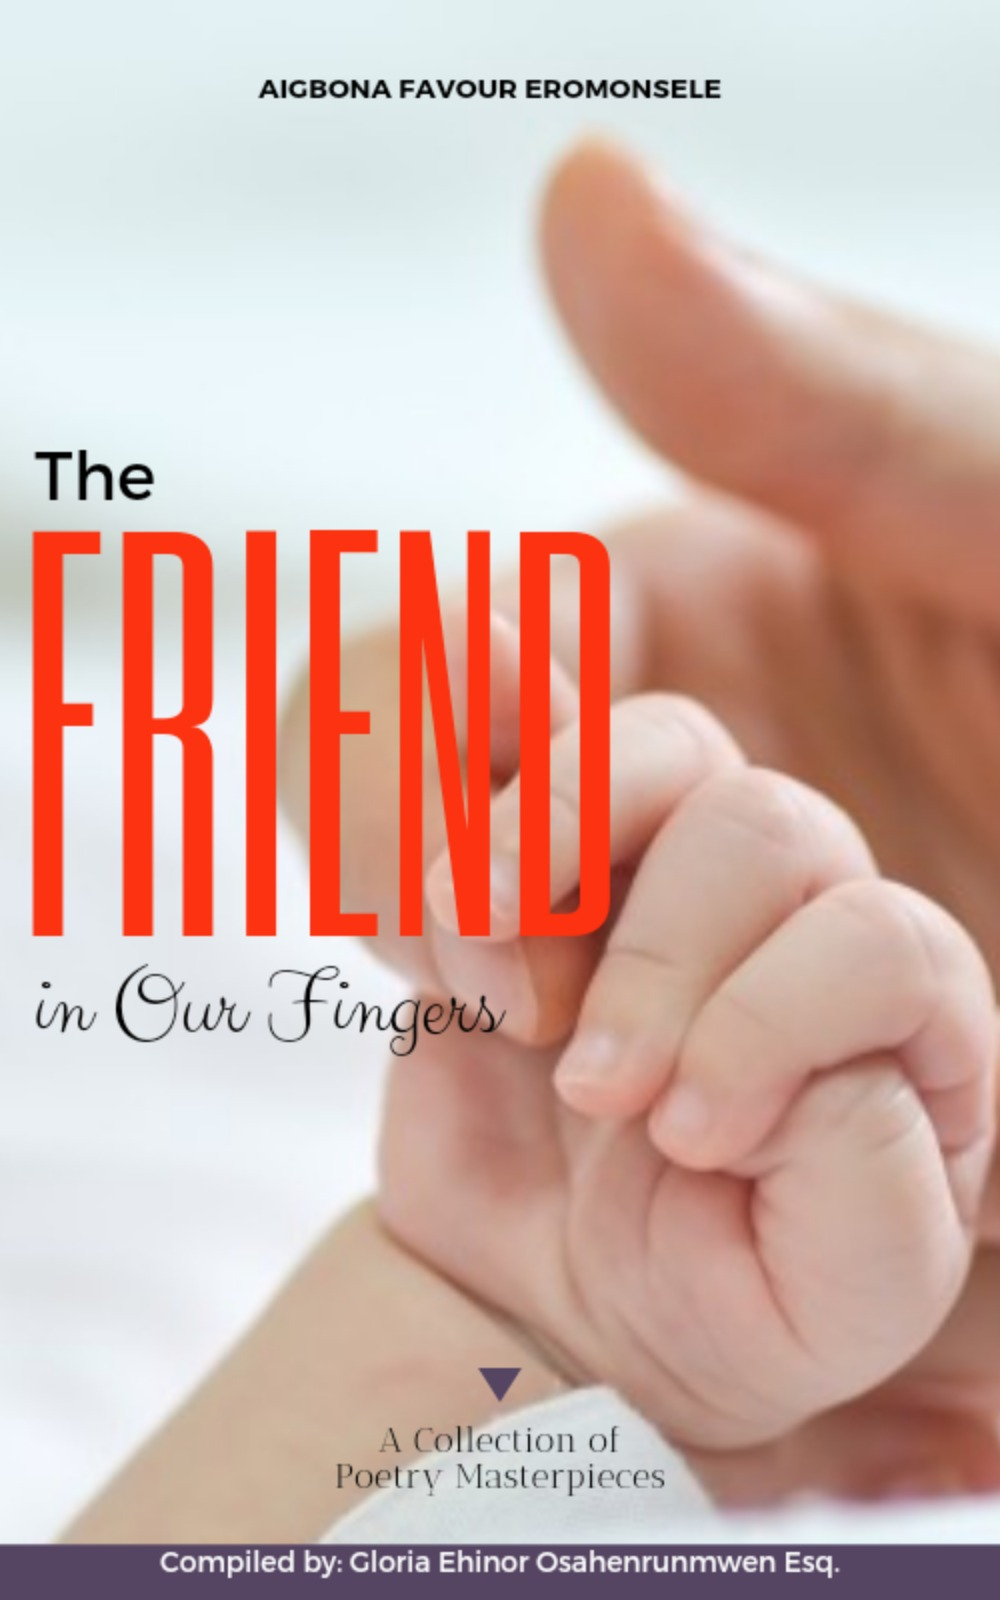 THE FRIEND IN OUR FINGERS